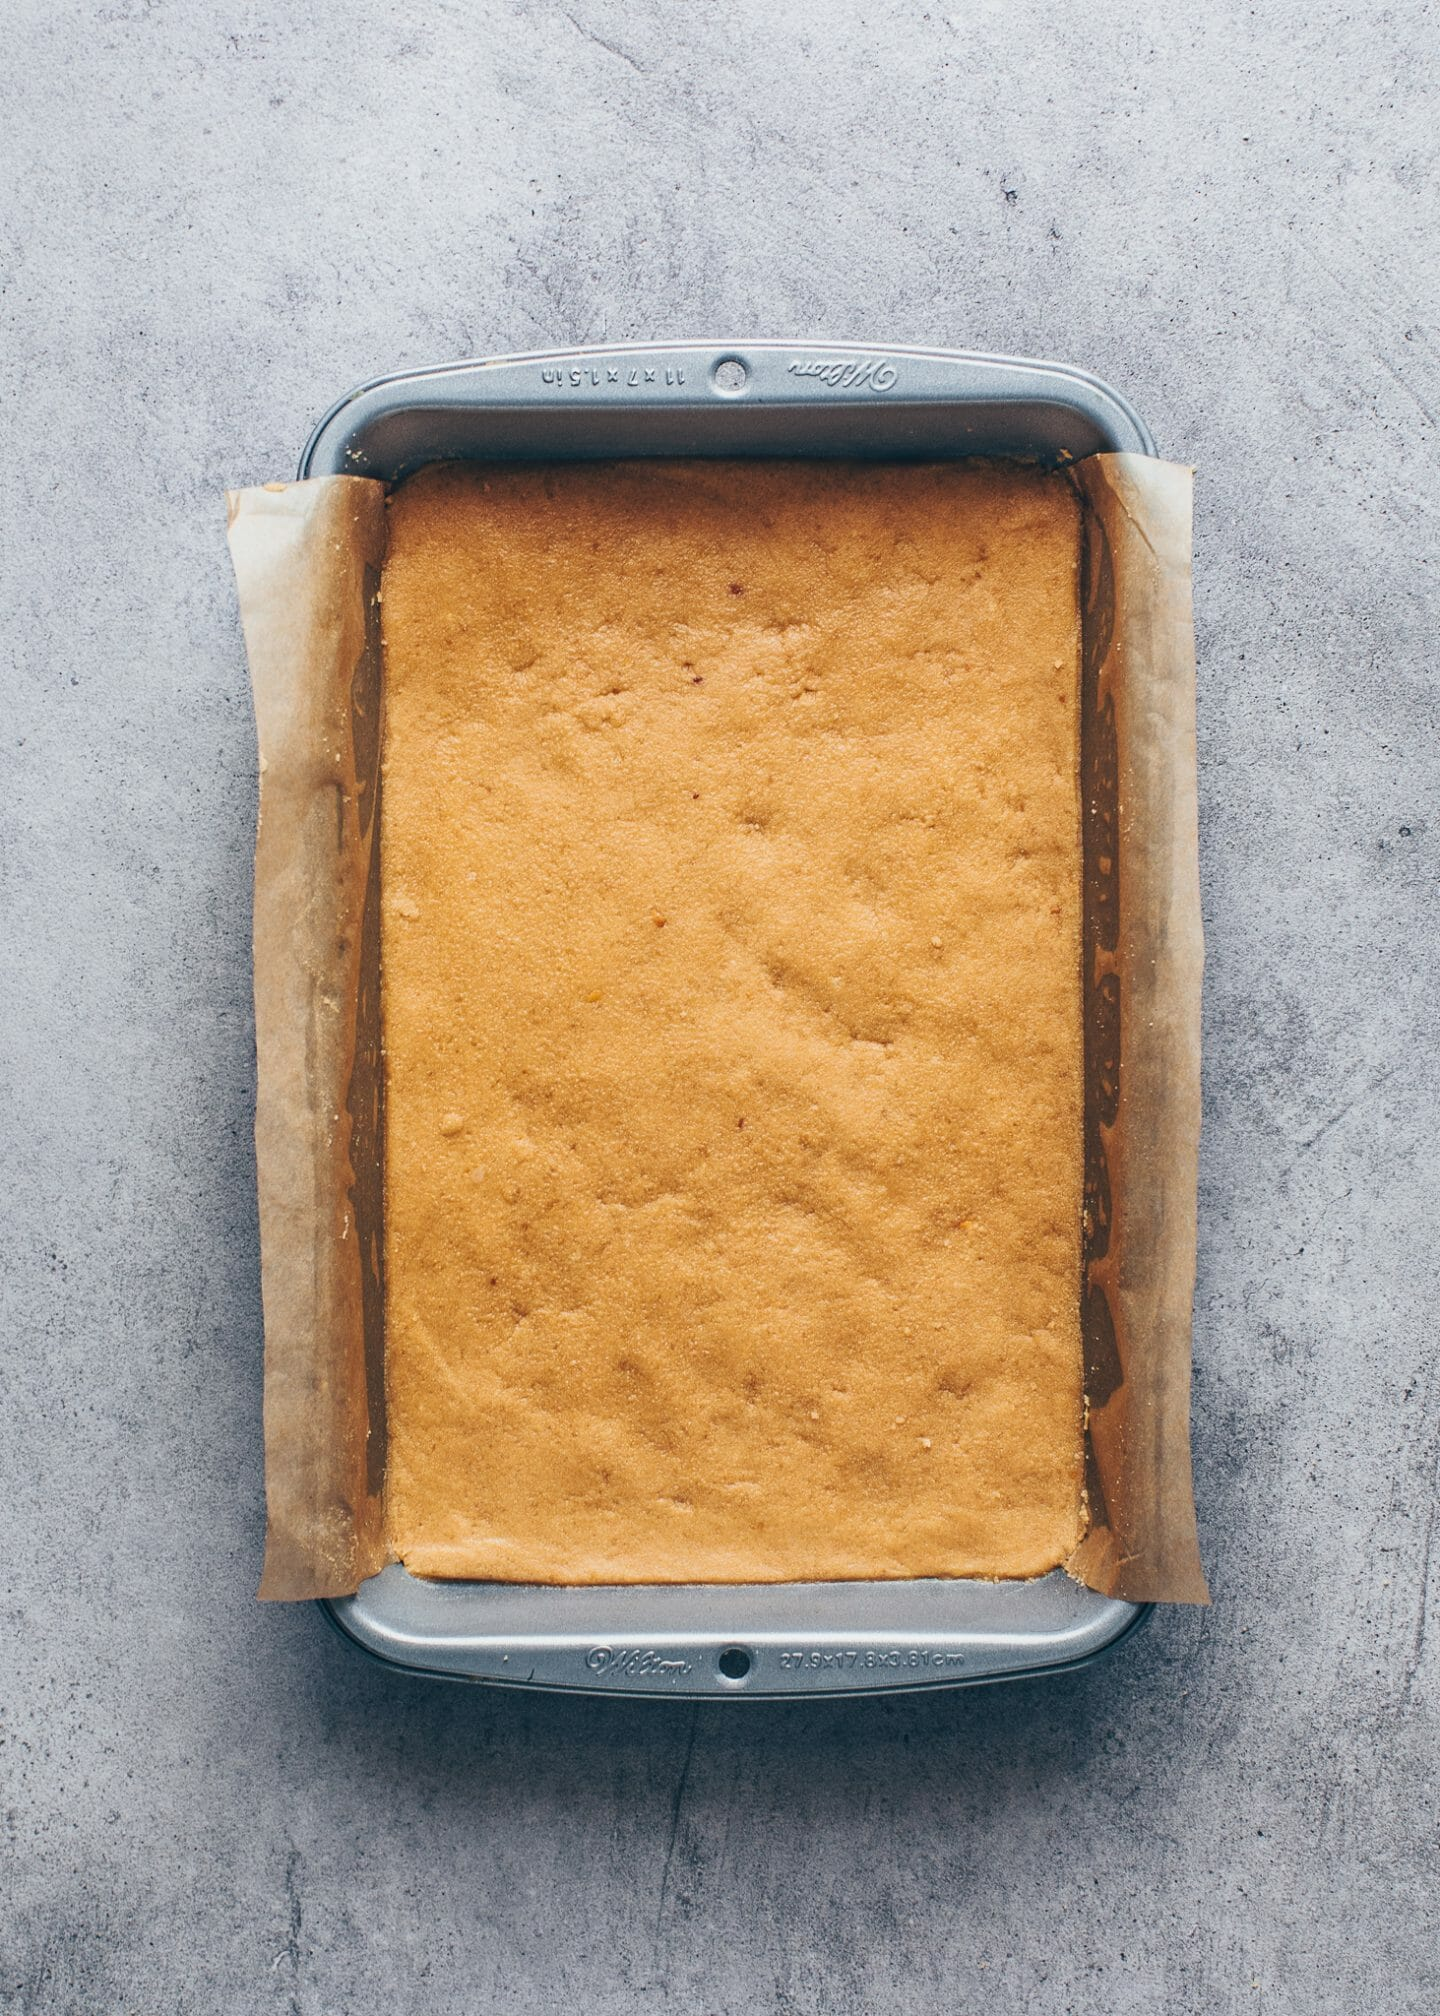 cookie crumb crust pressed into a baking pan lined with parchment paper